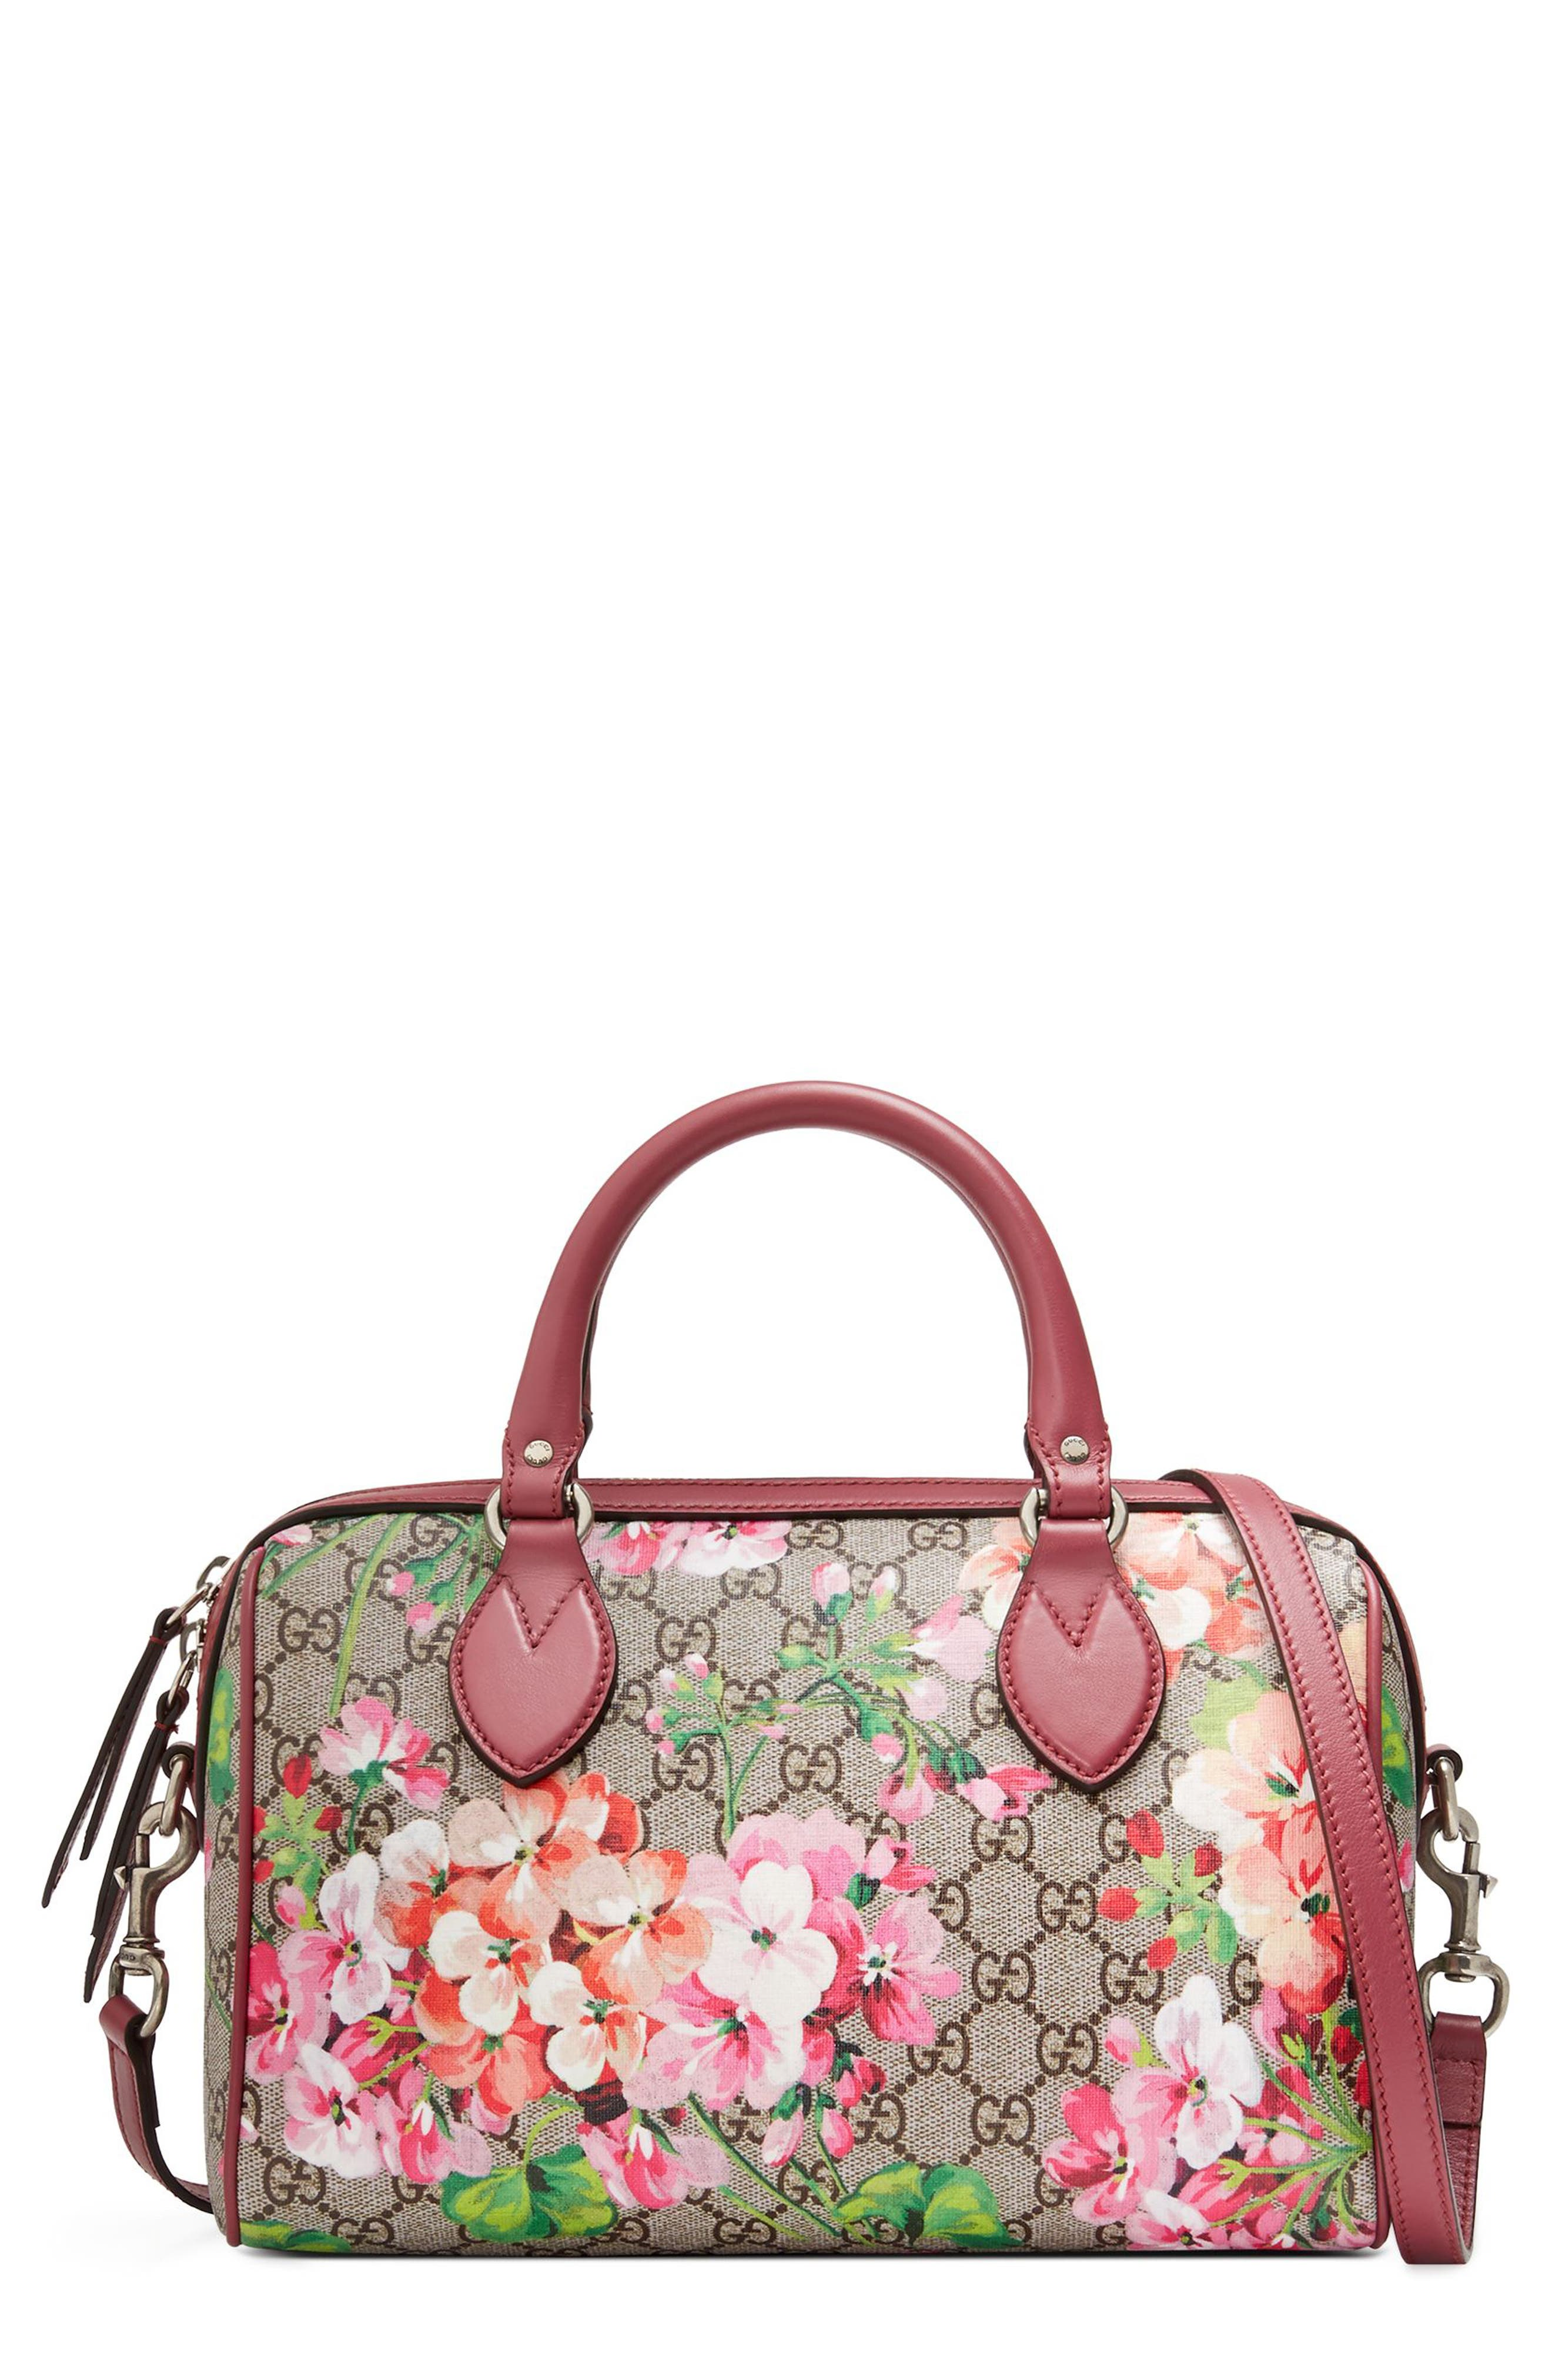 Alternate Image 1 Selected - Gucci Small Blooms Top Handle GG Supreme Canvas Bag